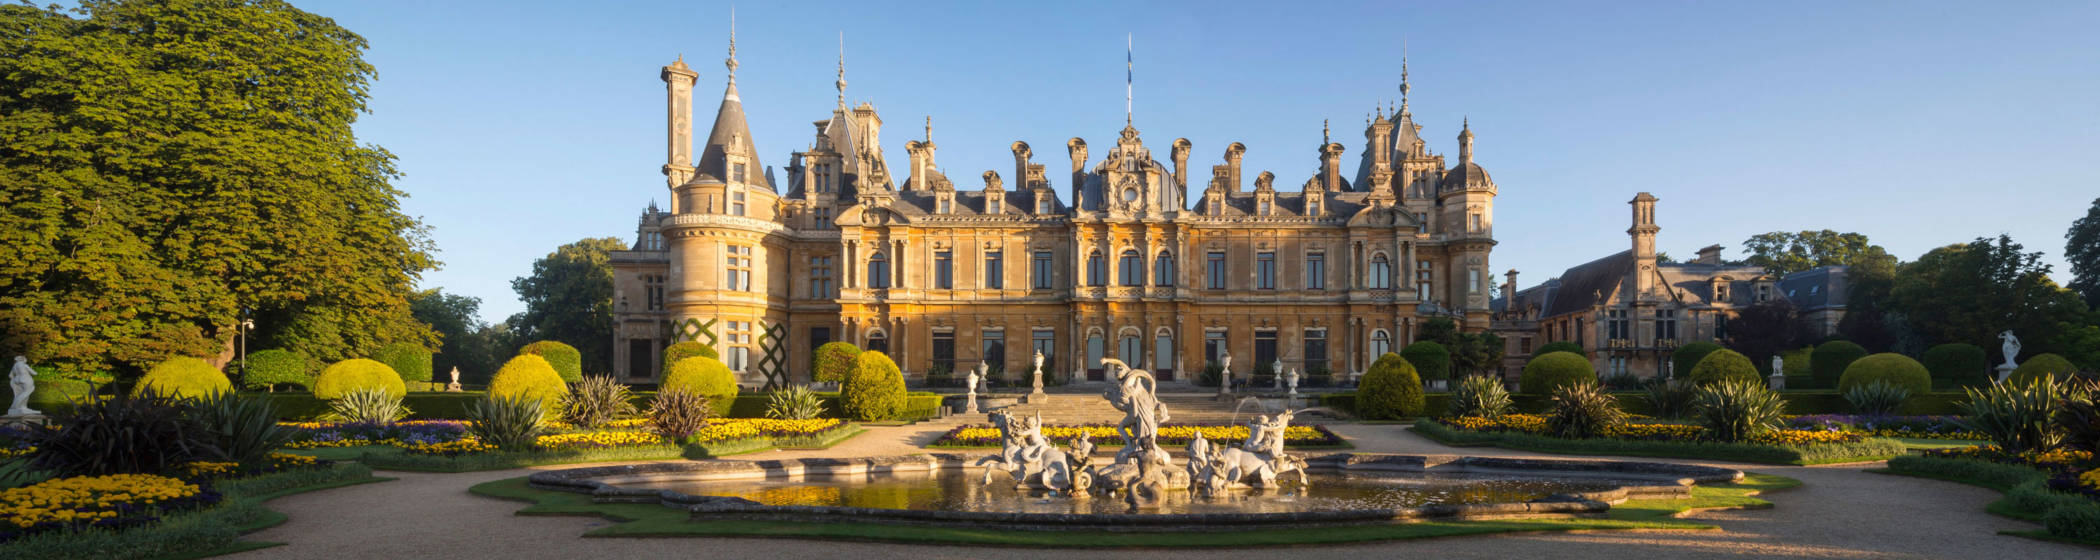 South front of Waddesdon Manor